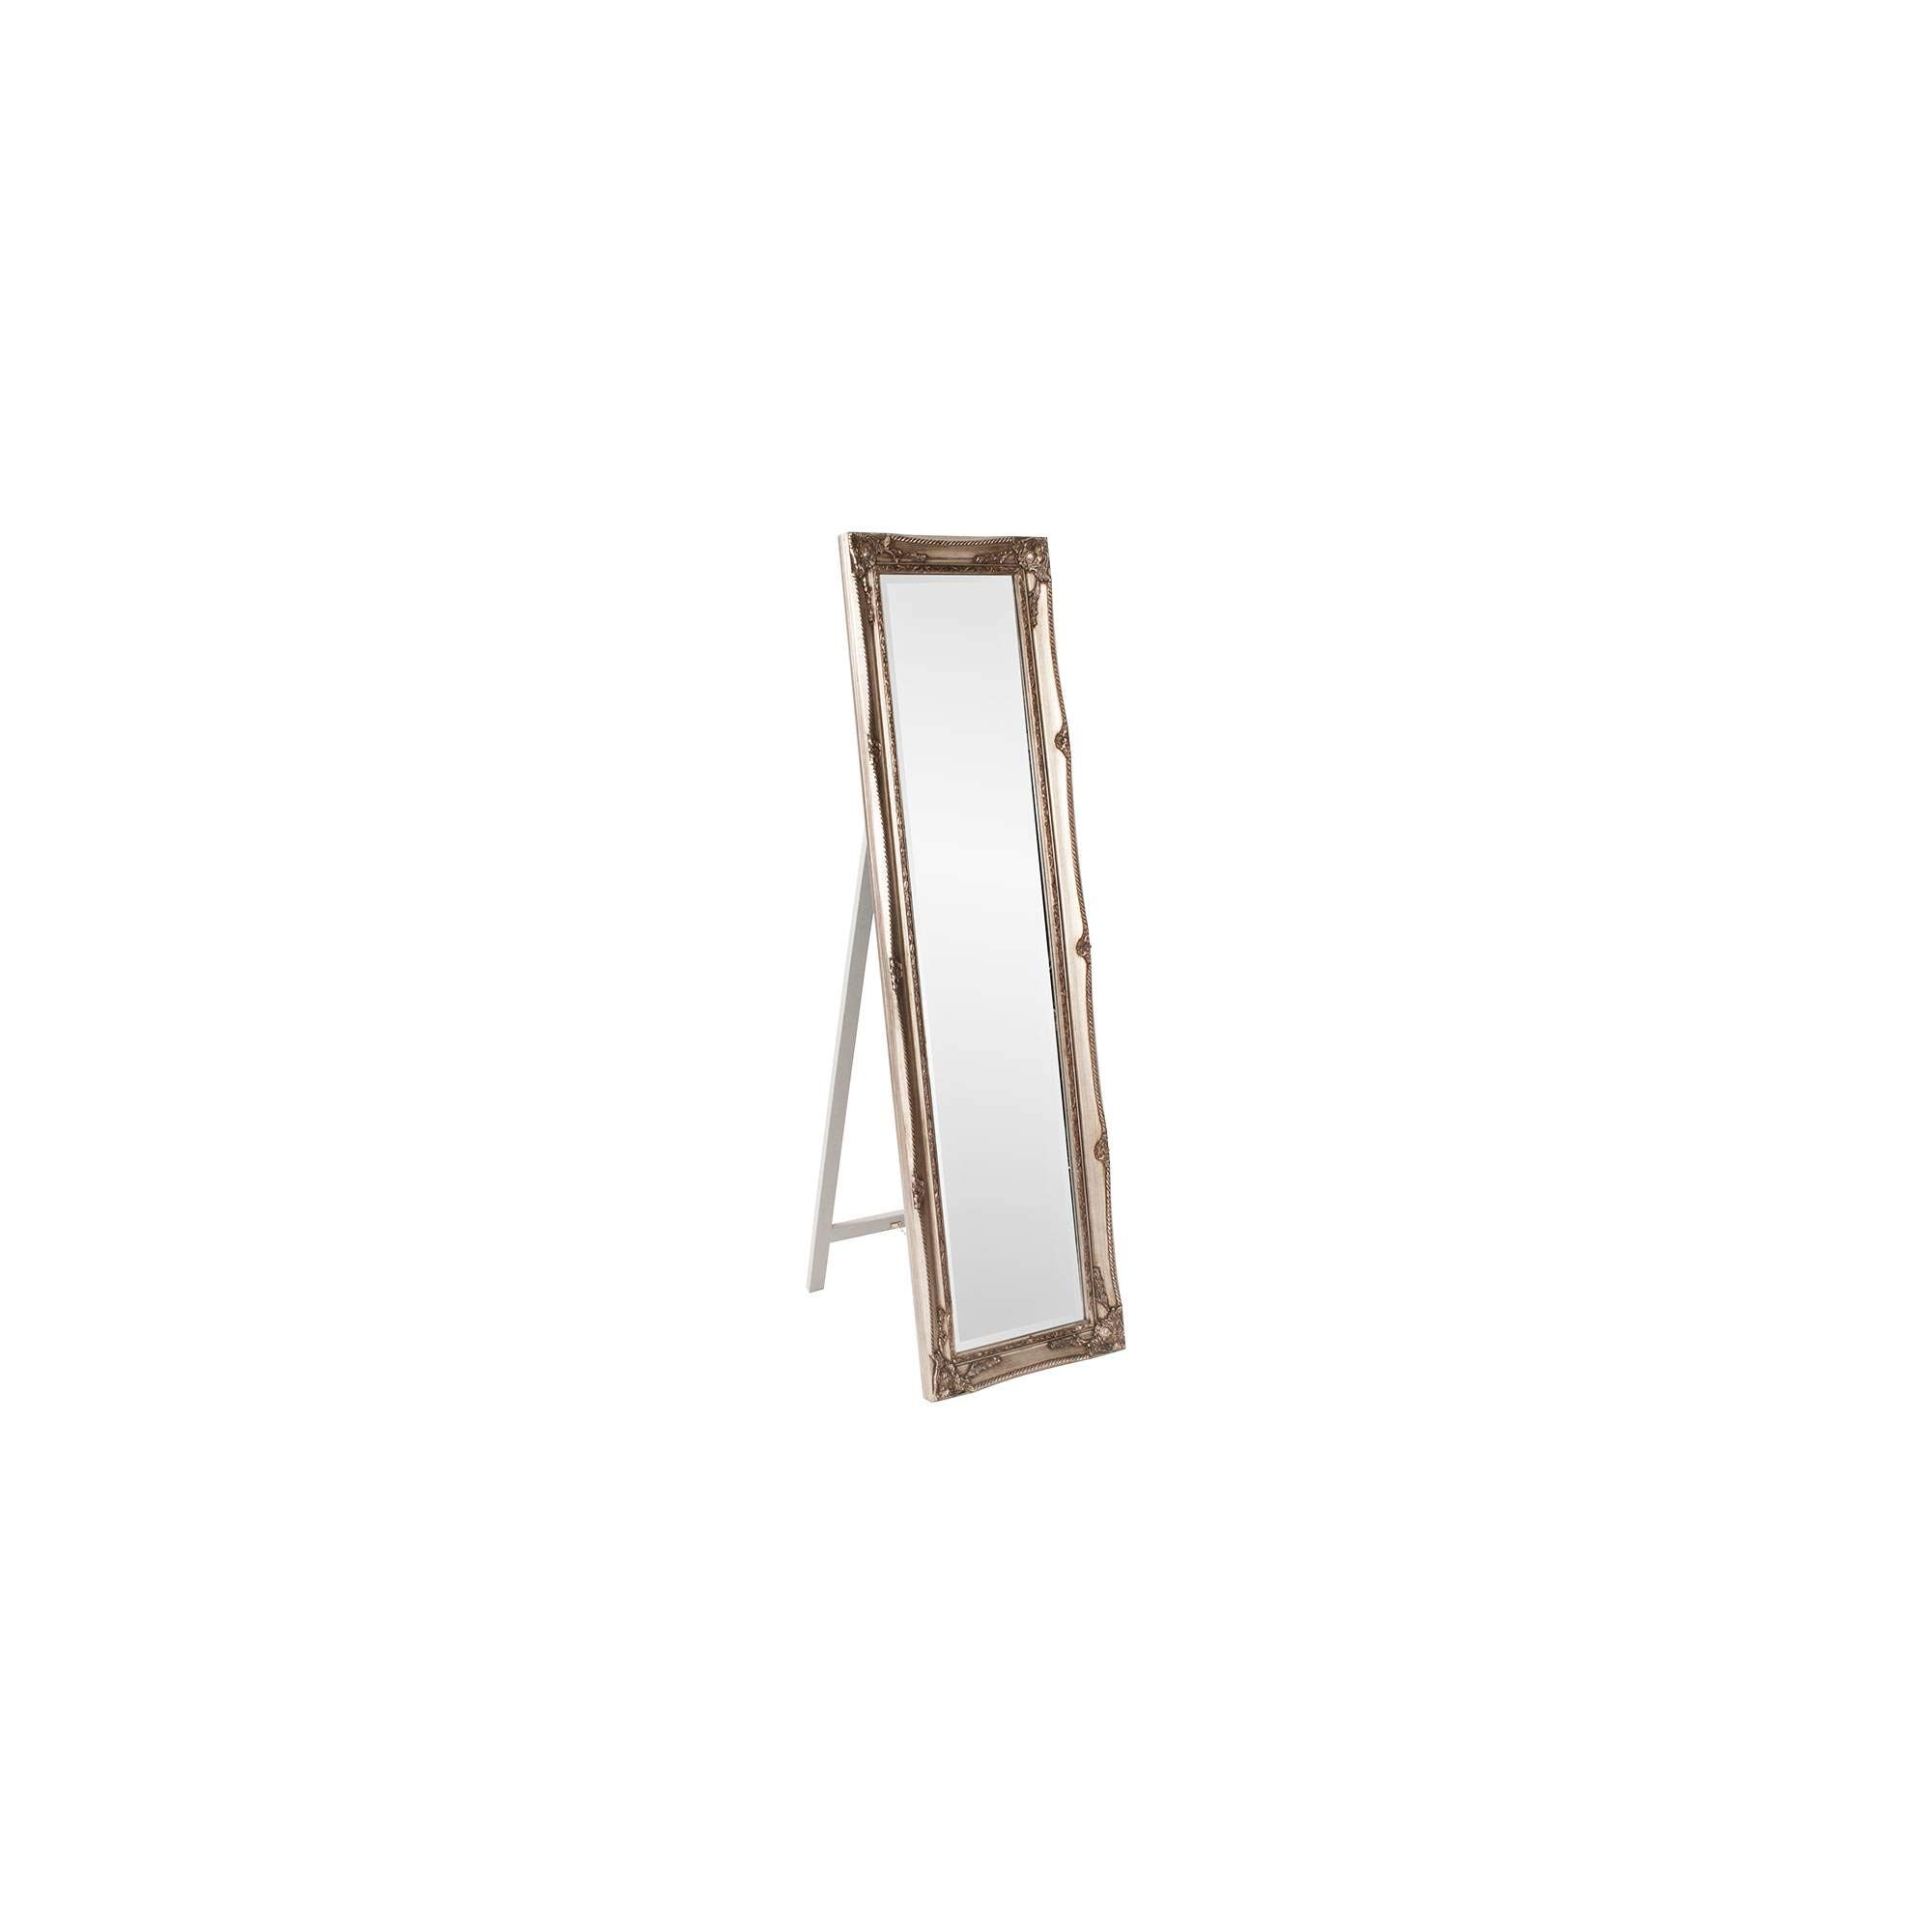 Howard Elliott 57026 Queen Ann Mirror, Standing, Antique Silver Leaf